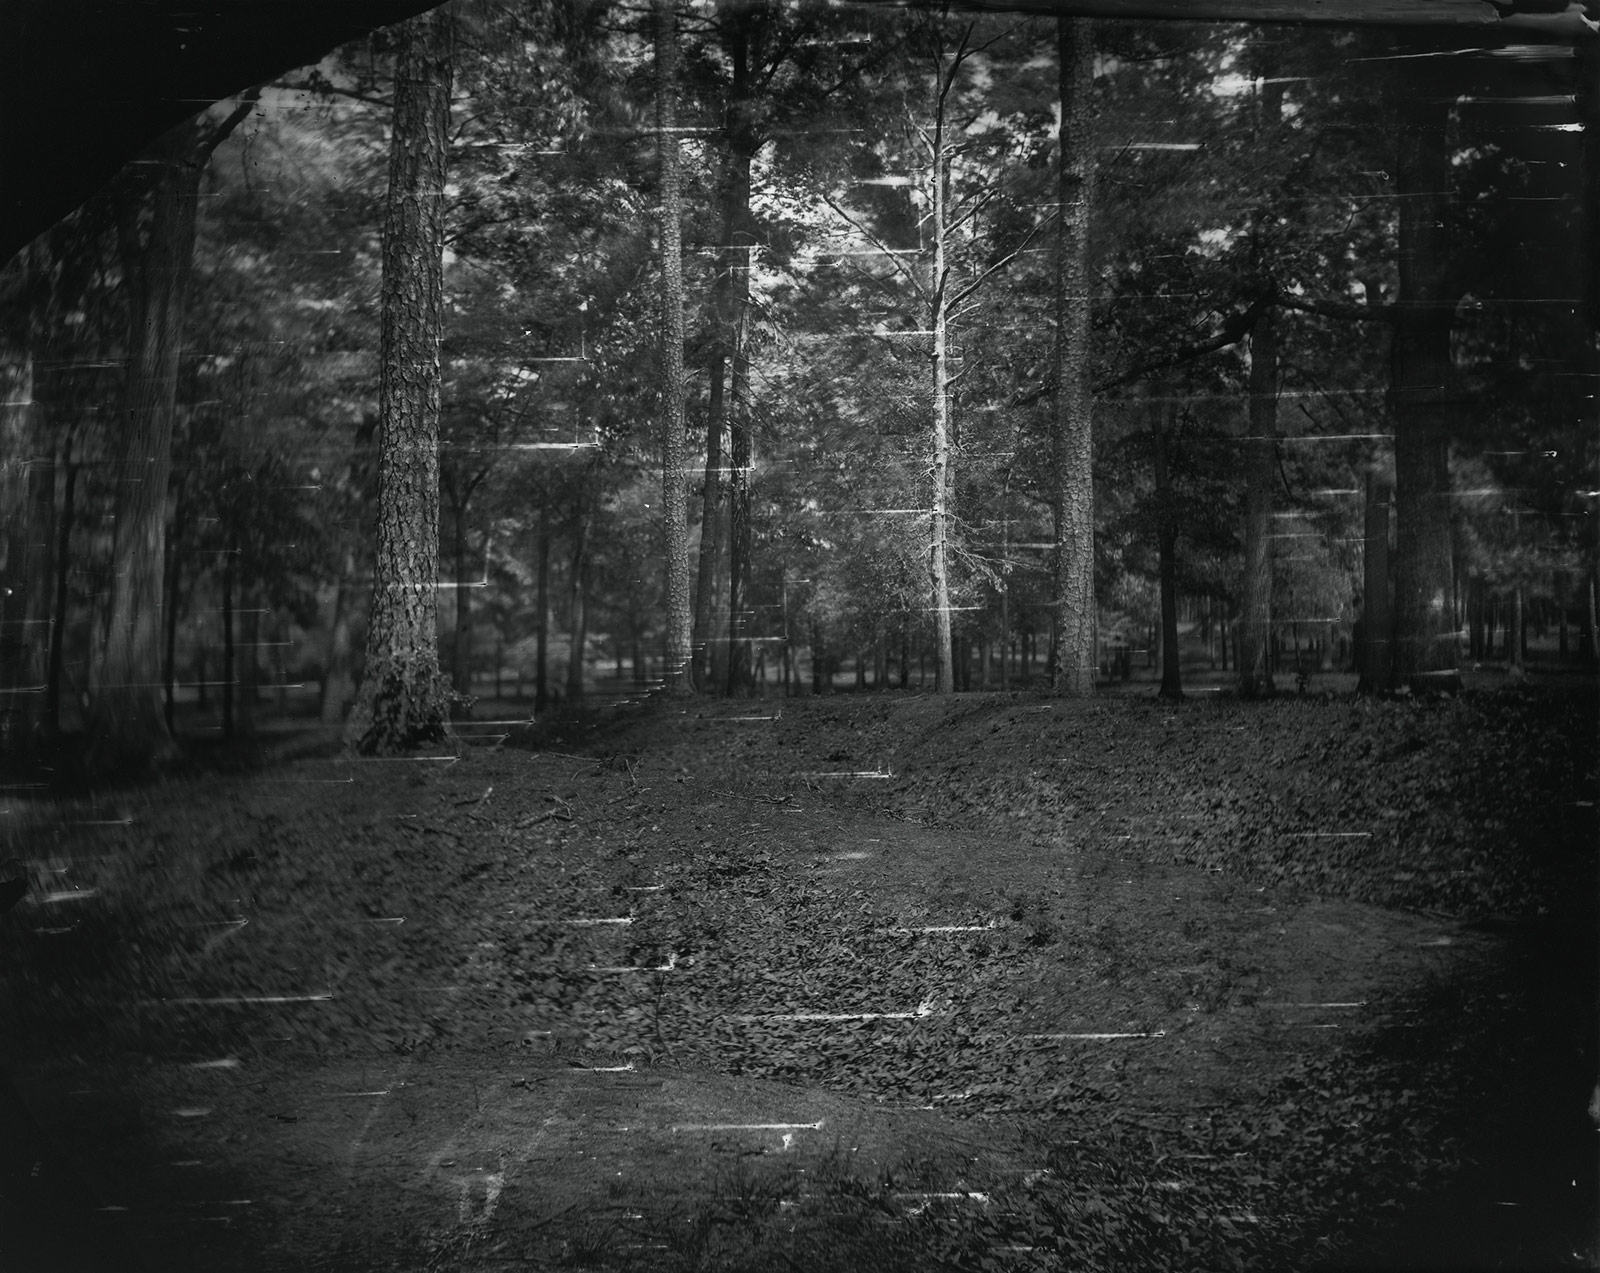 A dark moody photograph of trees in a forest.